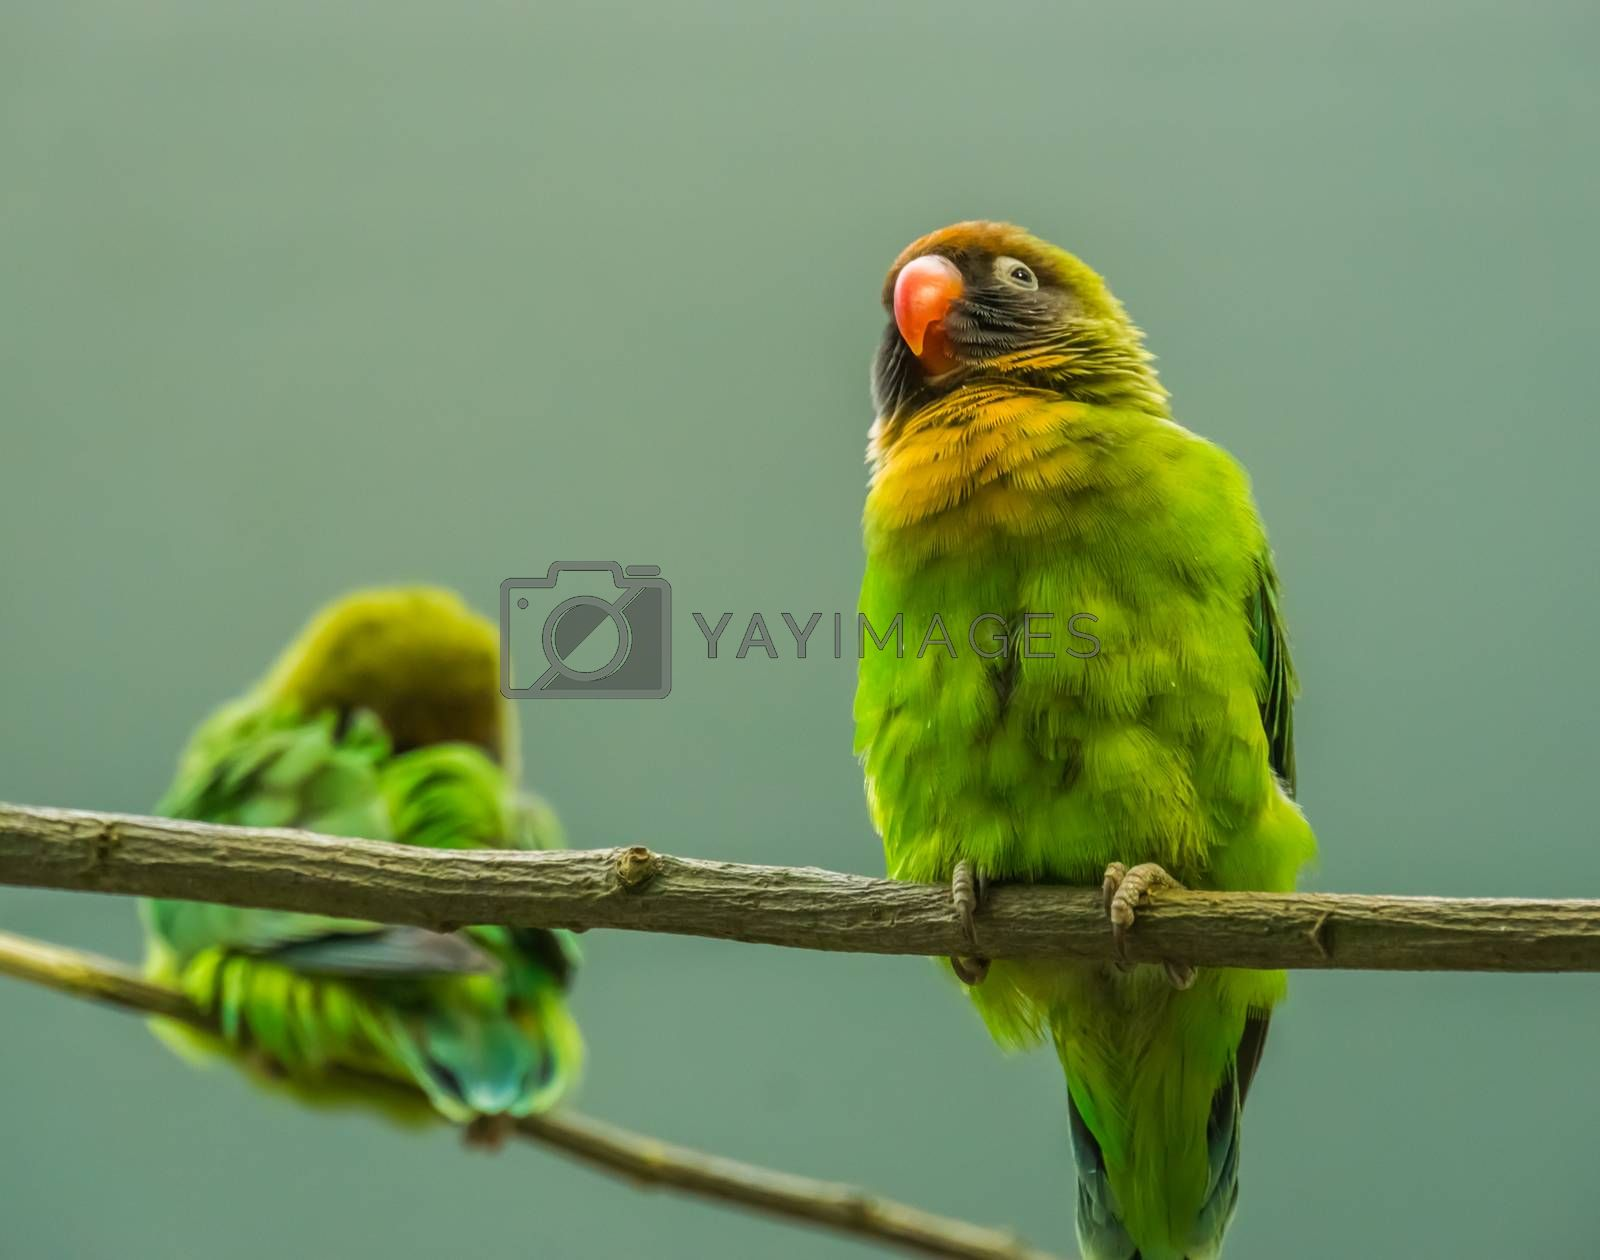 closeup portrait of a black cheeked lovebird, Near threatened tropical specie from Zambia, Africa